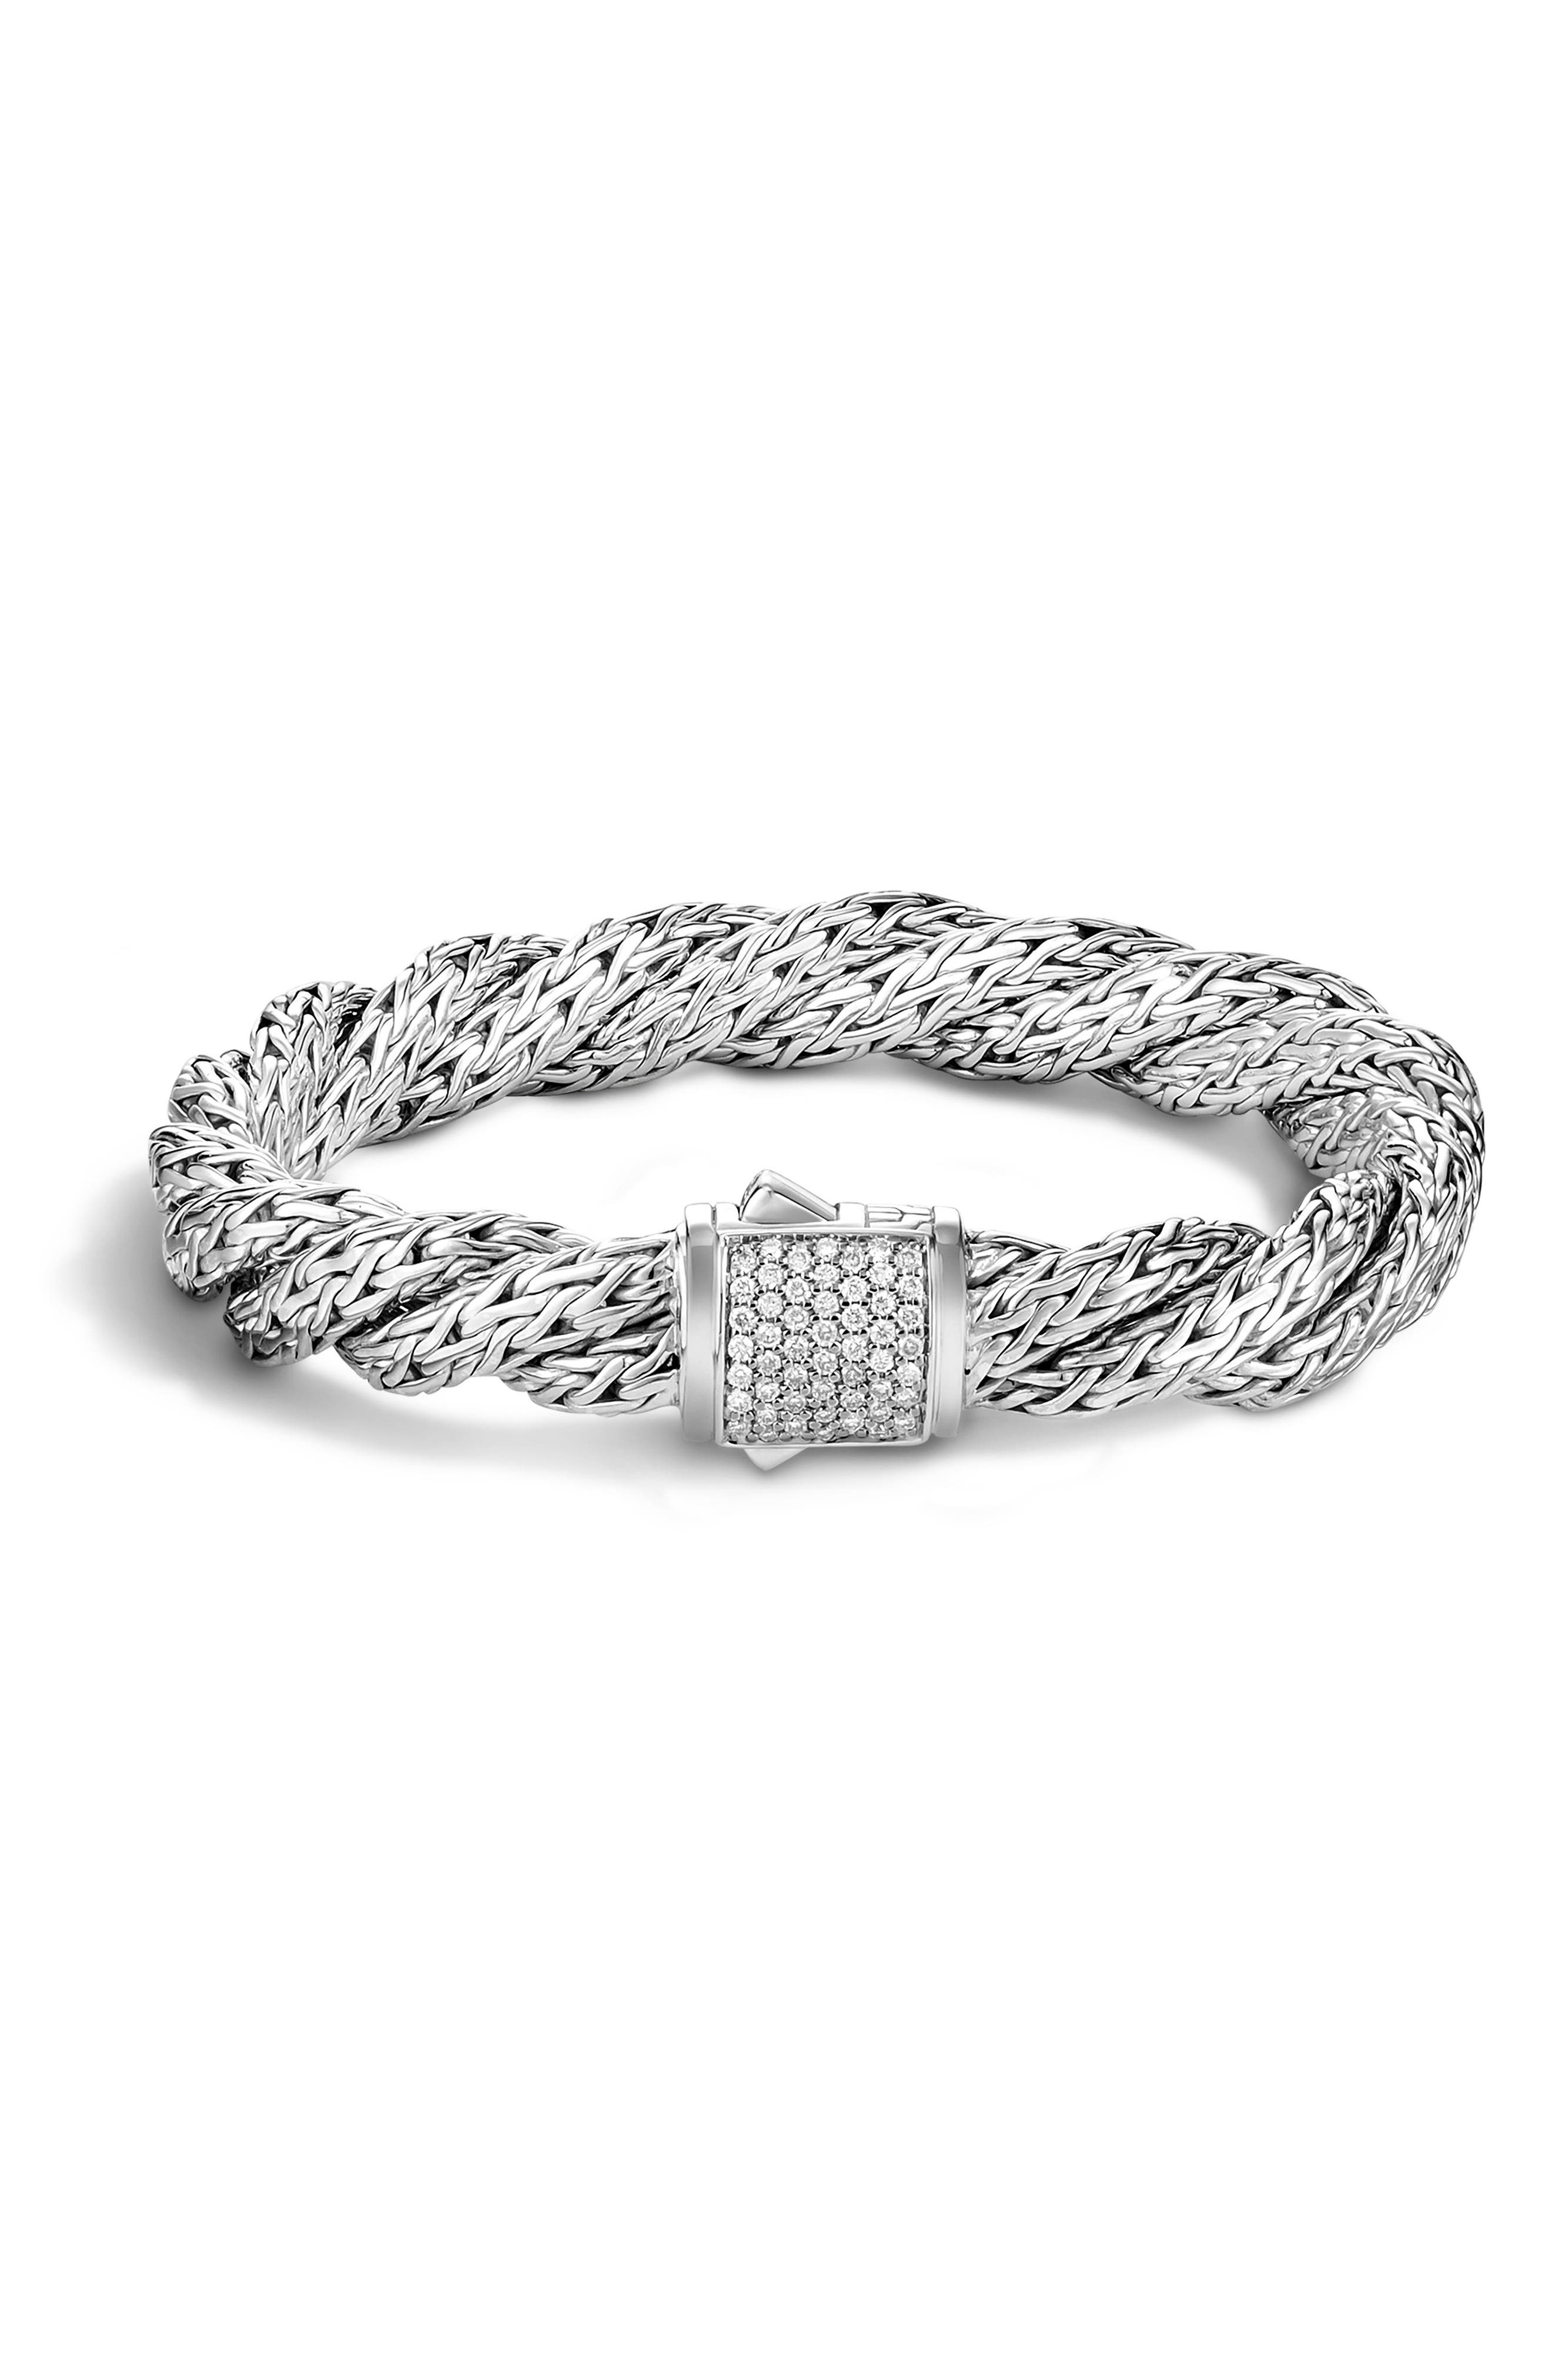 Twist Chain Pavé Diamond Bracelet,                             Main thumbnail 1, color,                             Silver/ Diamond